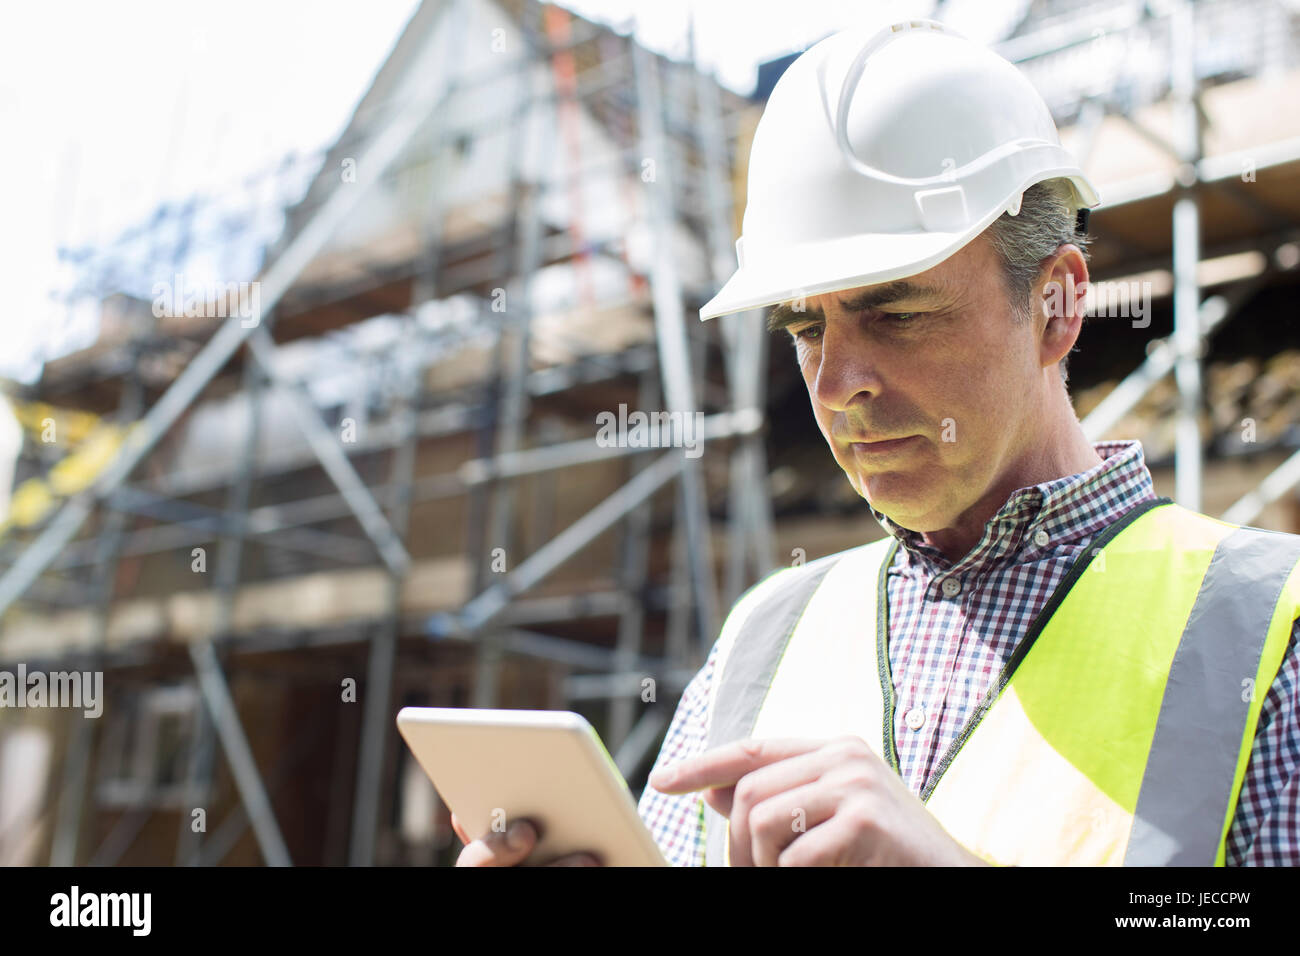 Architect On Building Site Using Digital Tablet - Stock Image